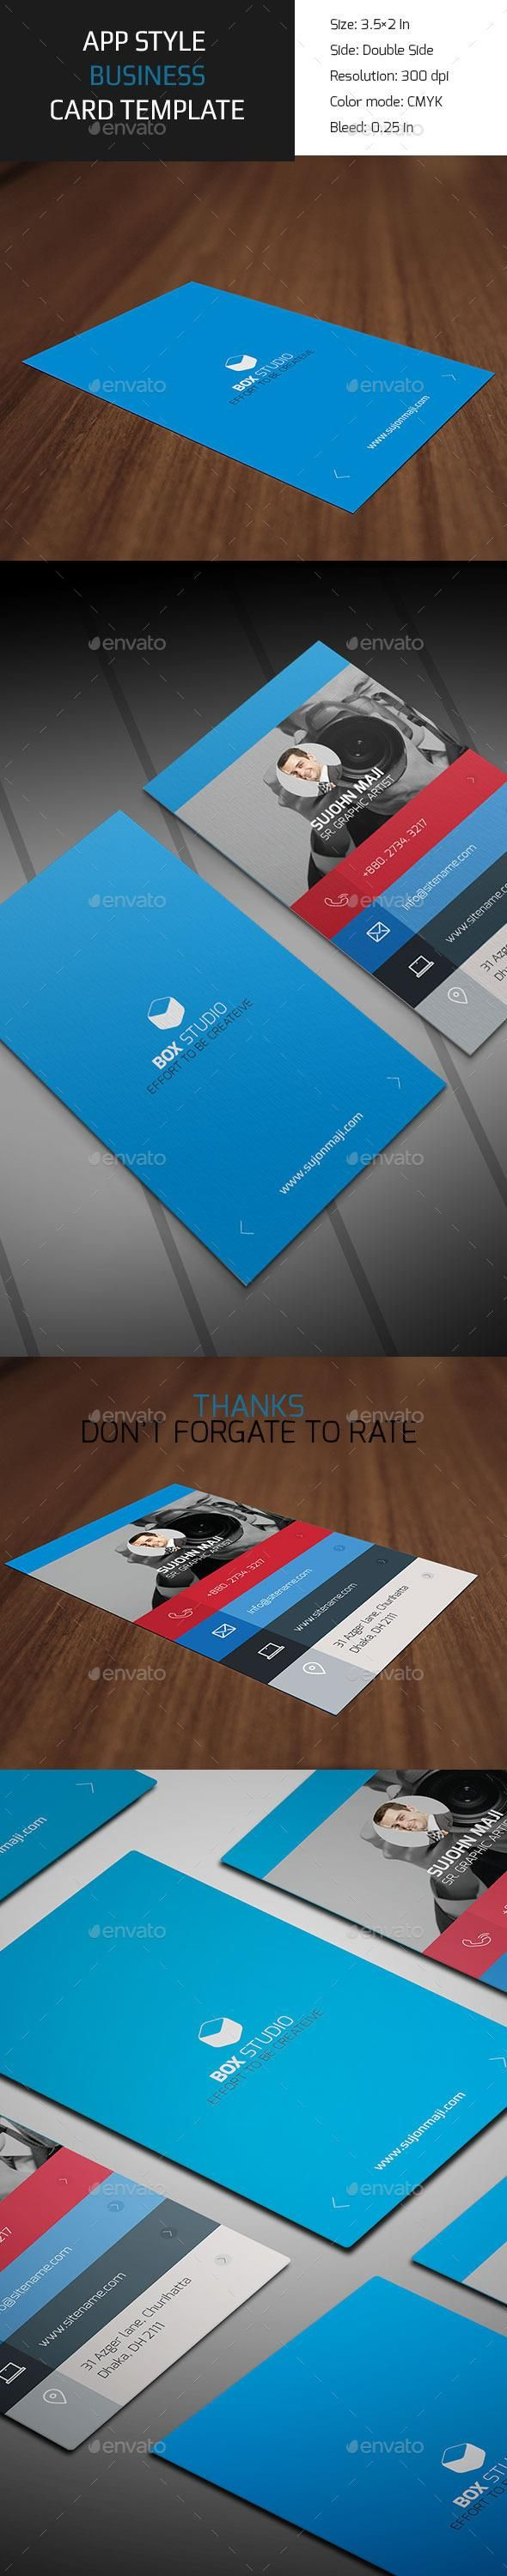 App Style Business Card #template #creative #business